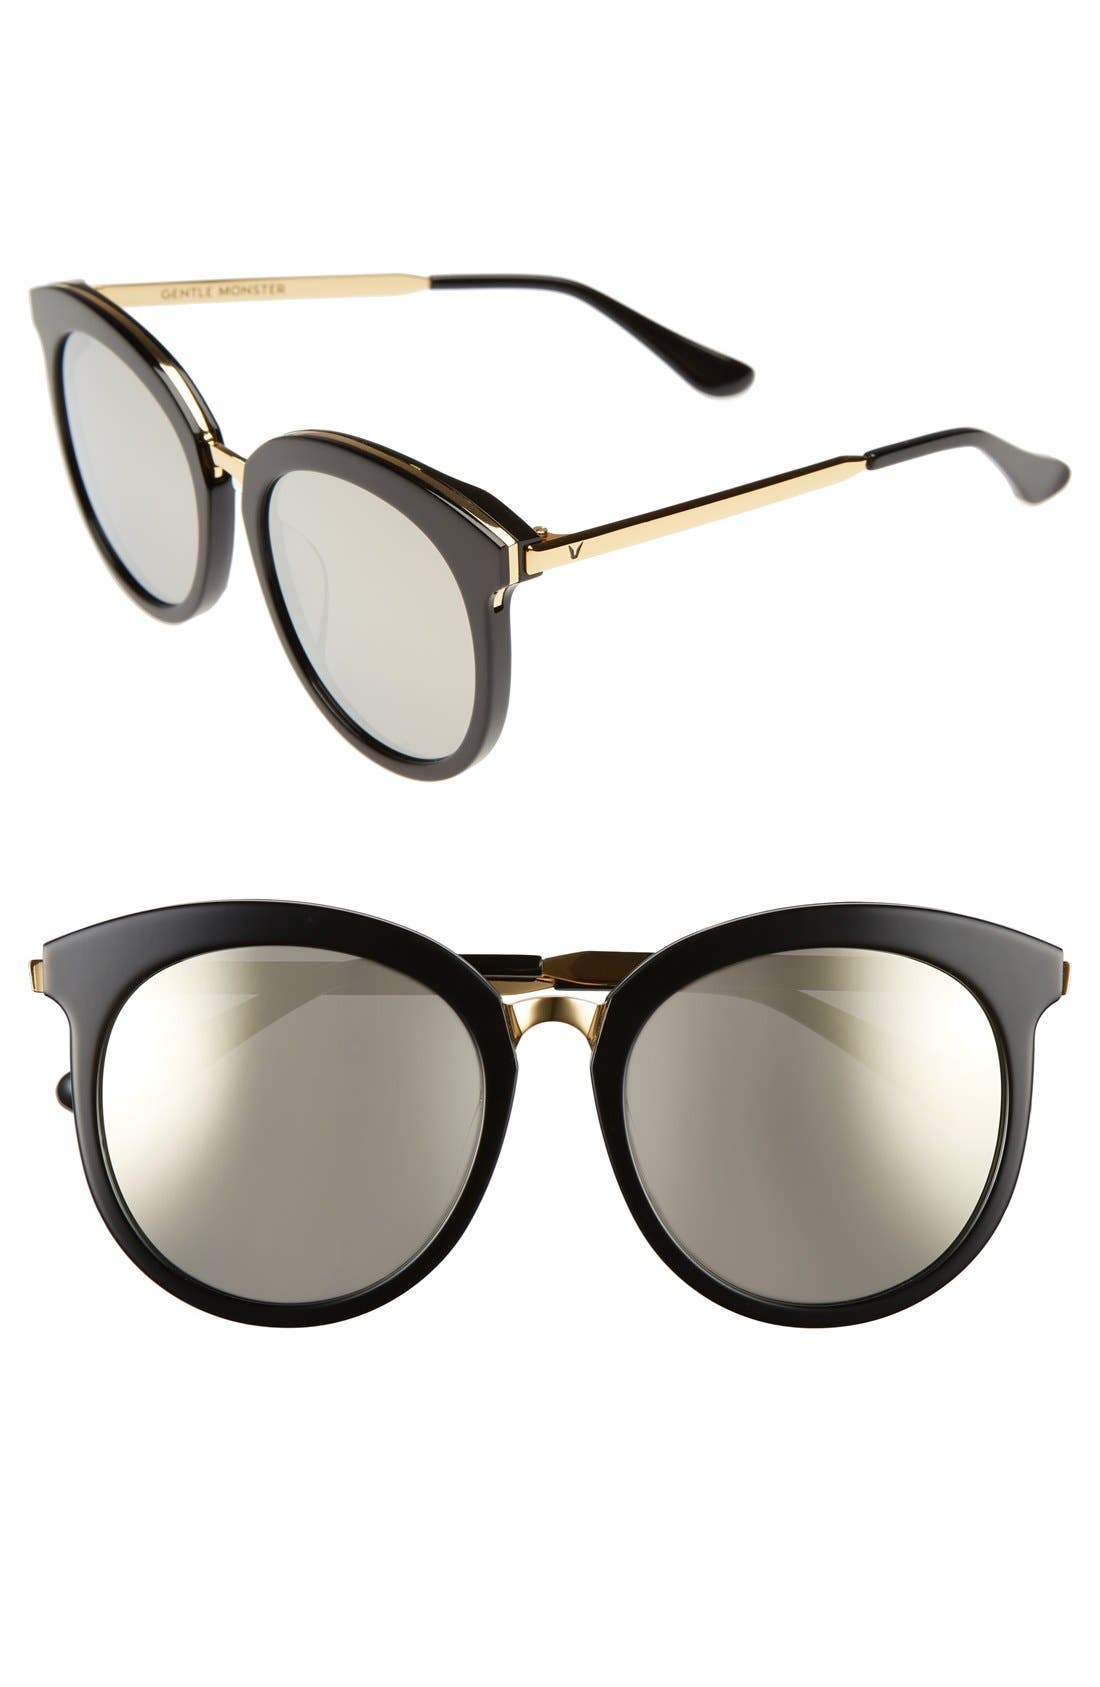 56mm Round Sunglasses,                             Main thumbnail 1, color,                             Black/ Gold